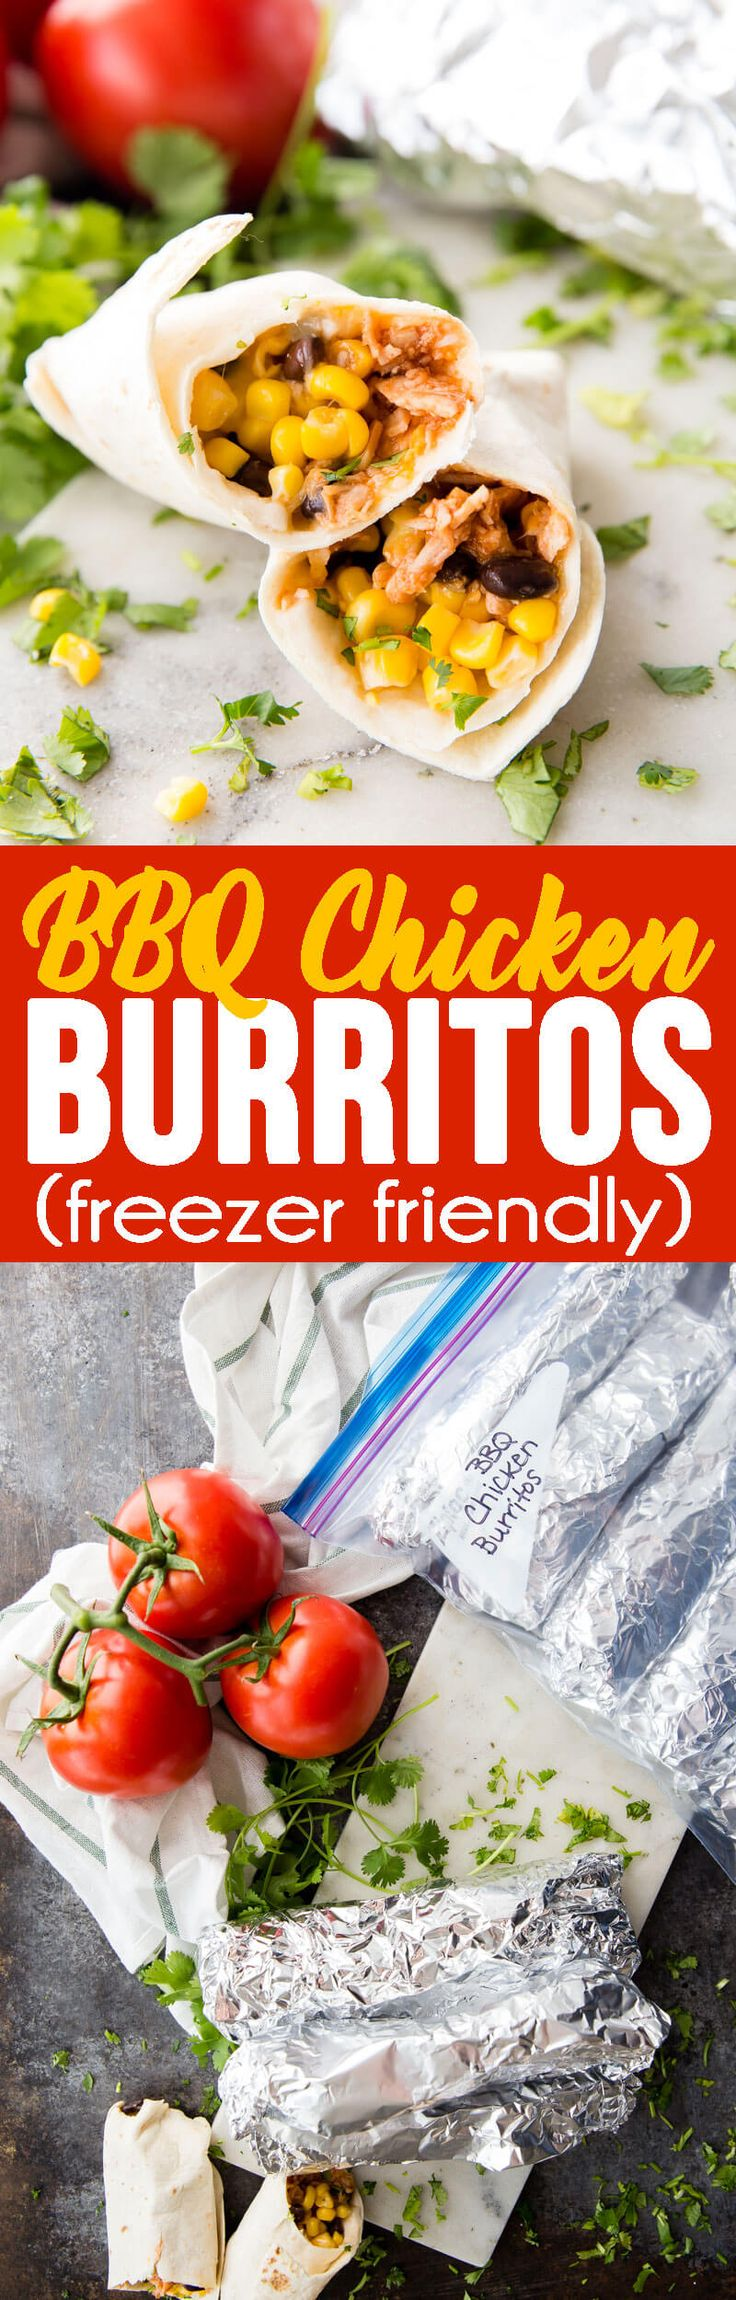 BBQ Chicken Burritos are quick, easy, and perfect for freezing!  #chickendinner #freezermeal #chickenburrito #burrito